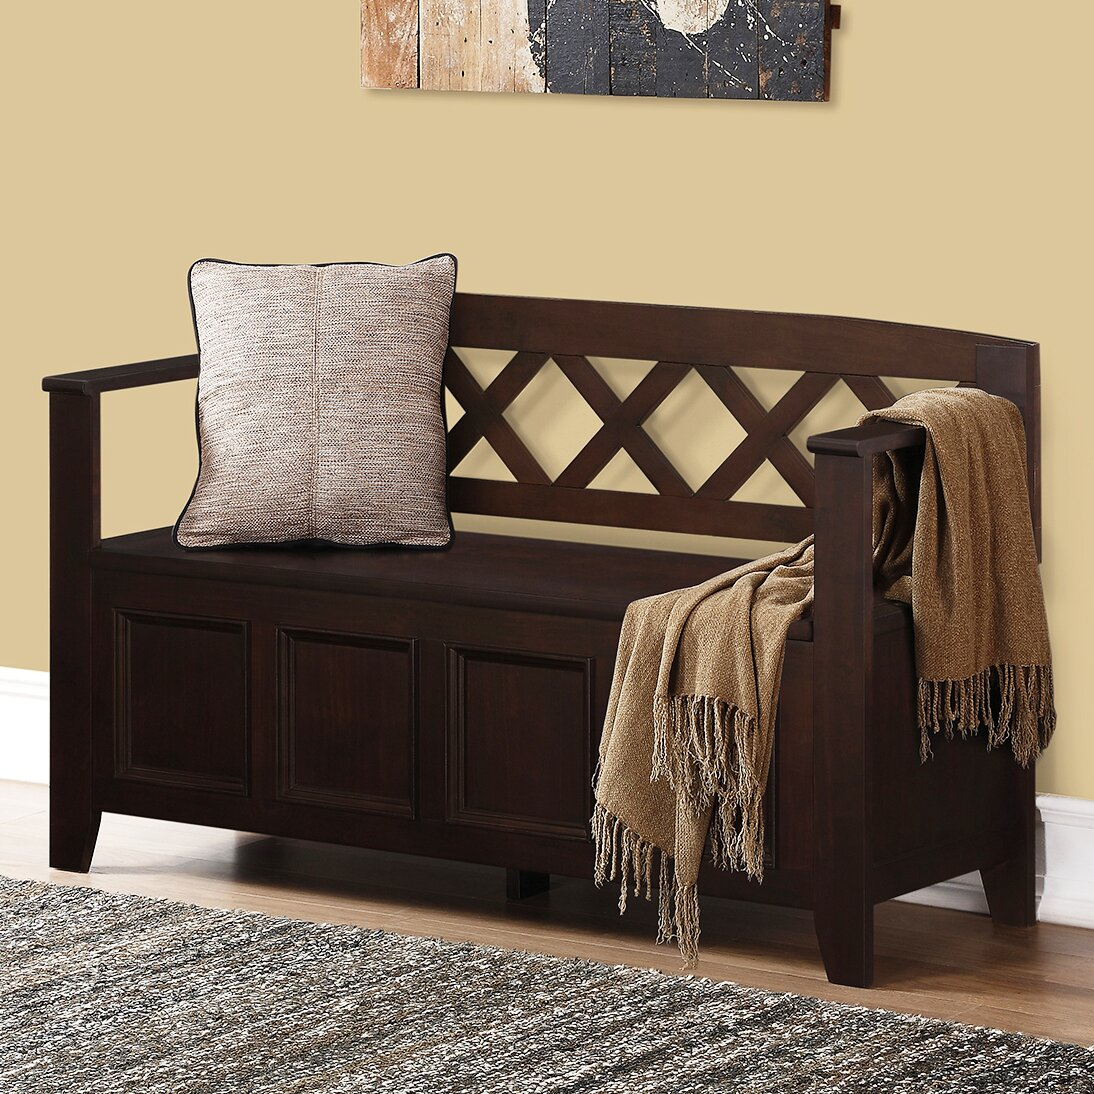 Darby Home Co Otterville Wood Storage Entryway Bench